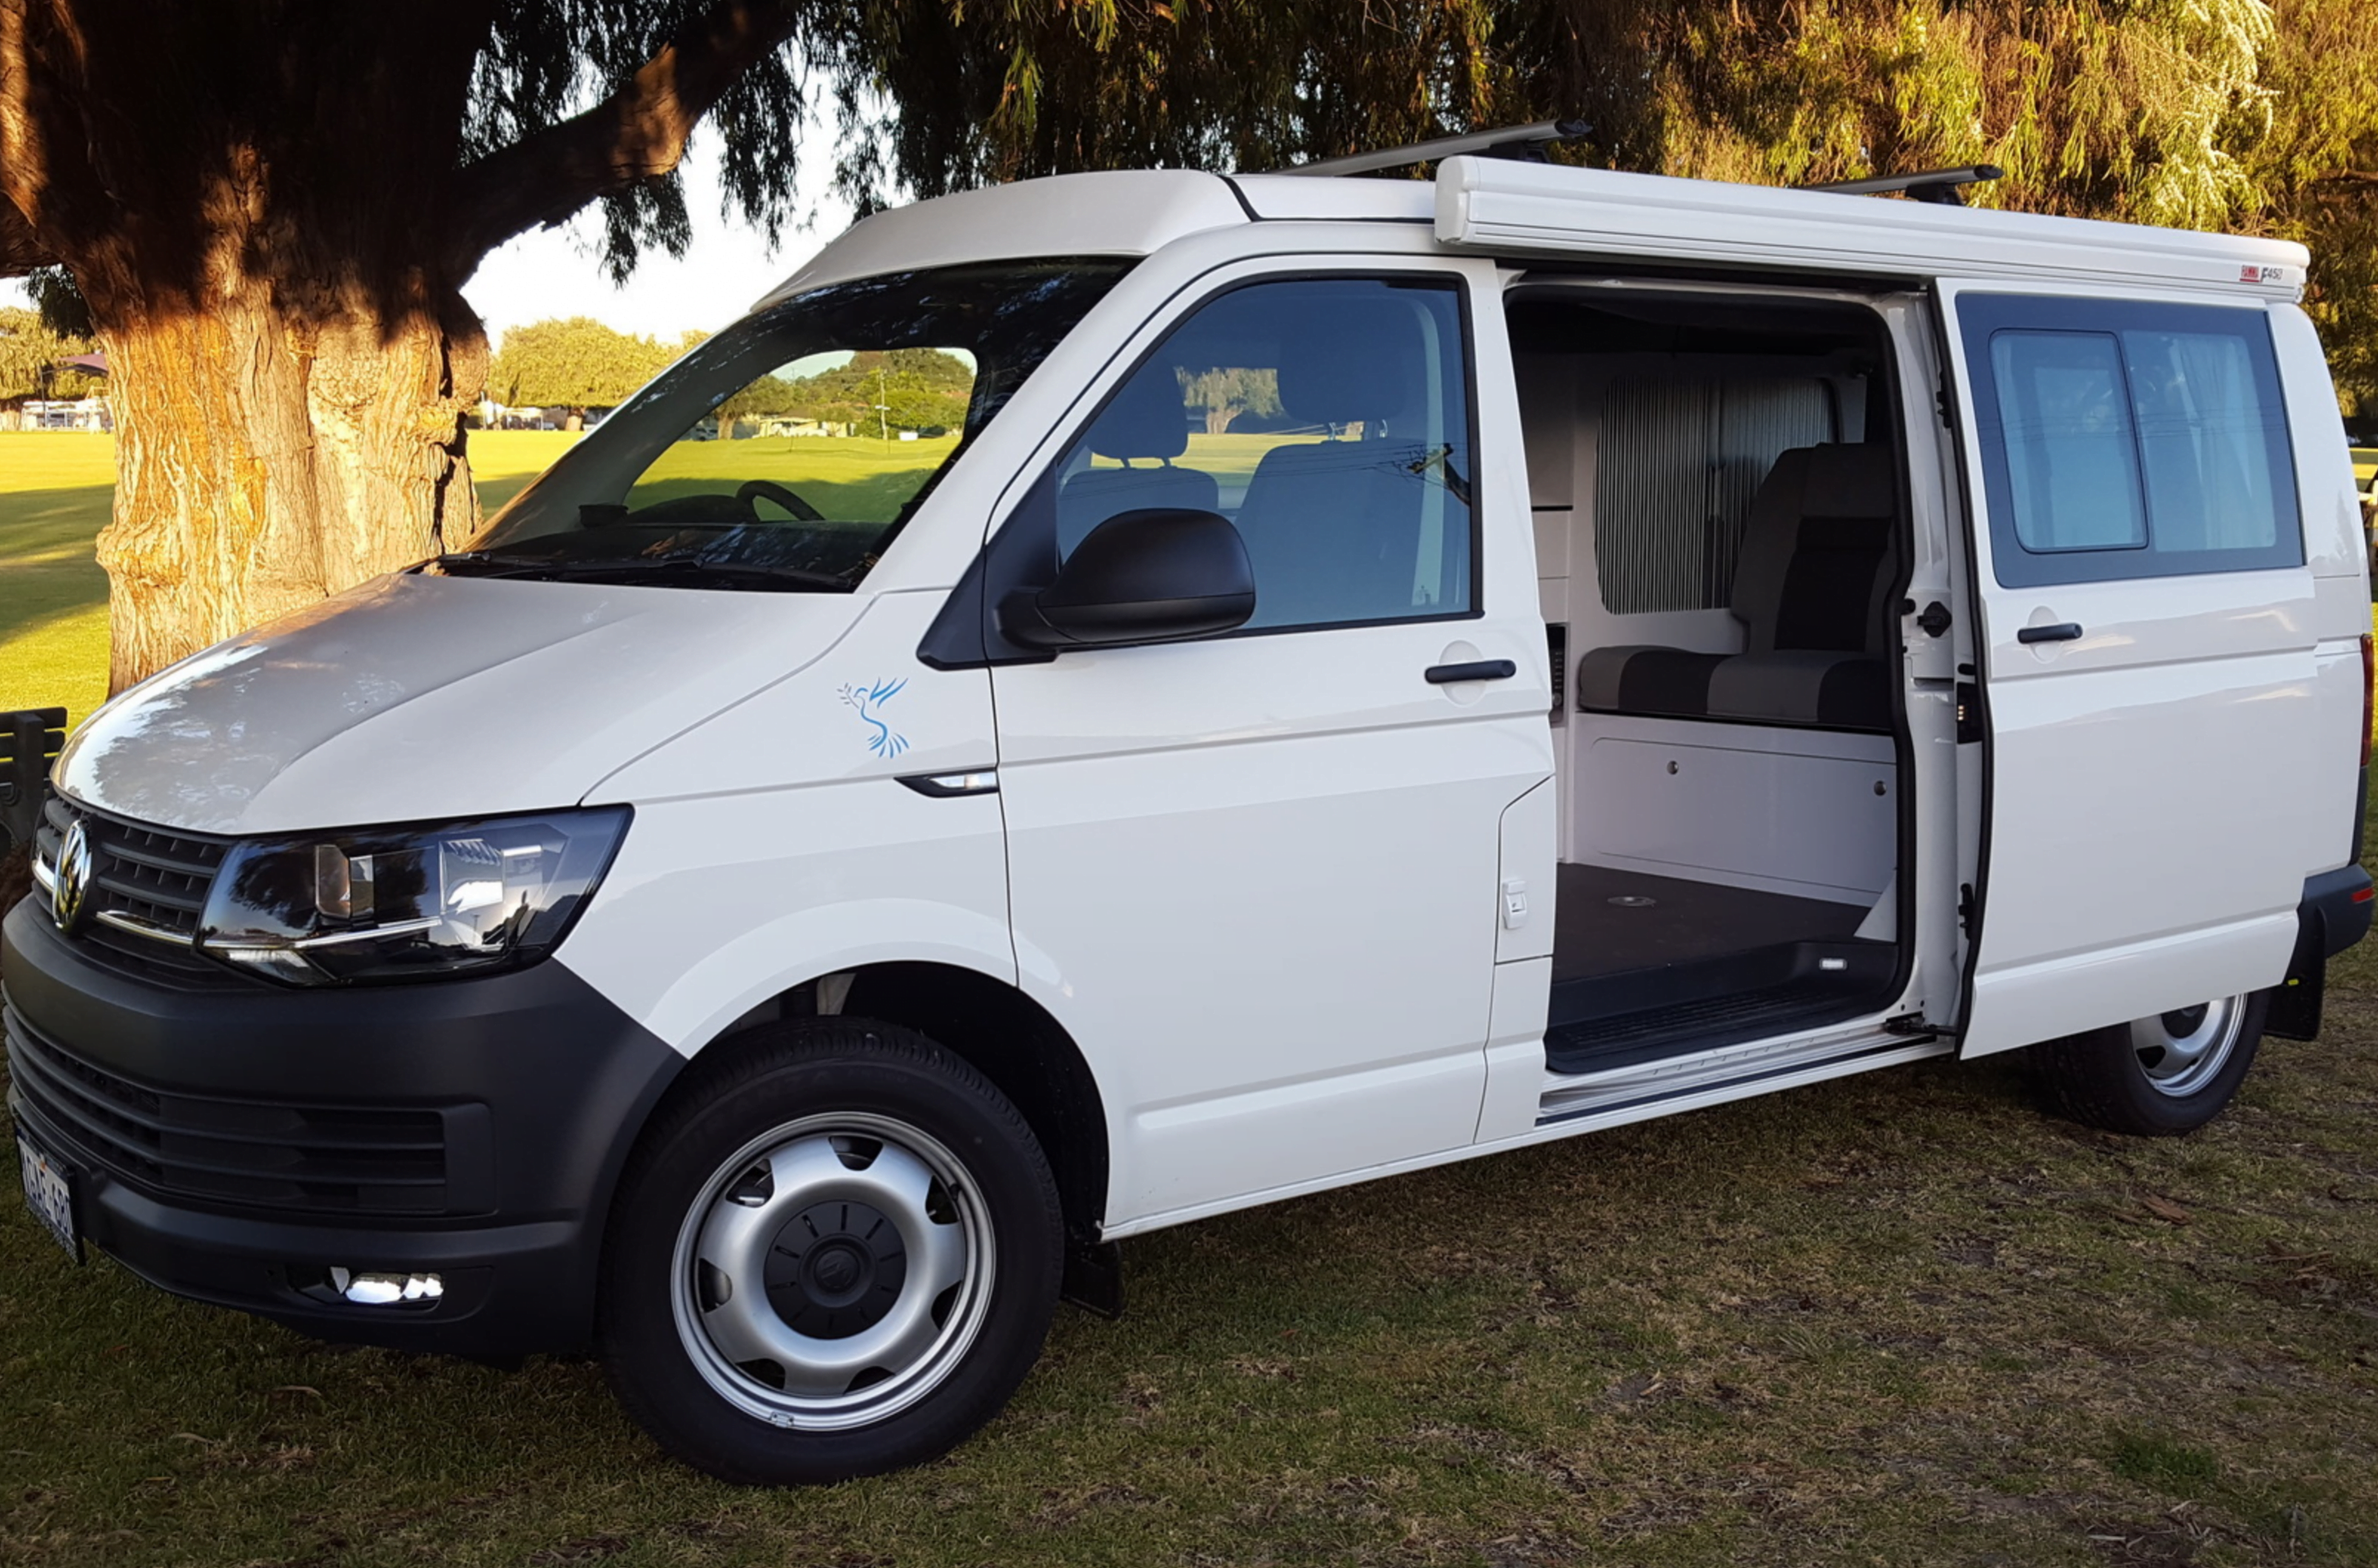 New Vw Transporter Camper By Order Dove Campers Perth Wa